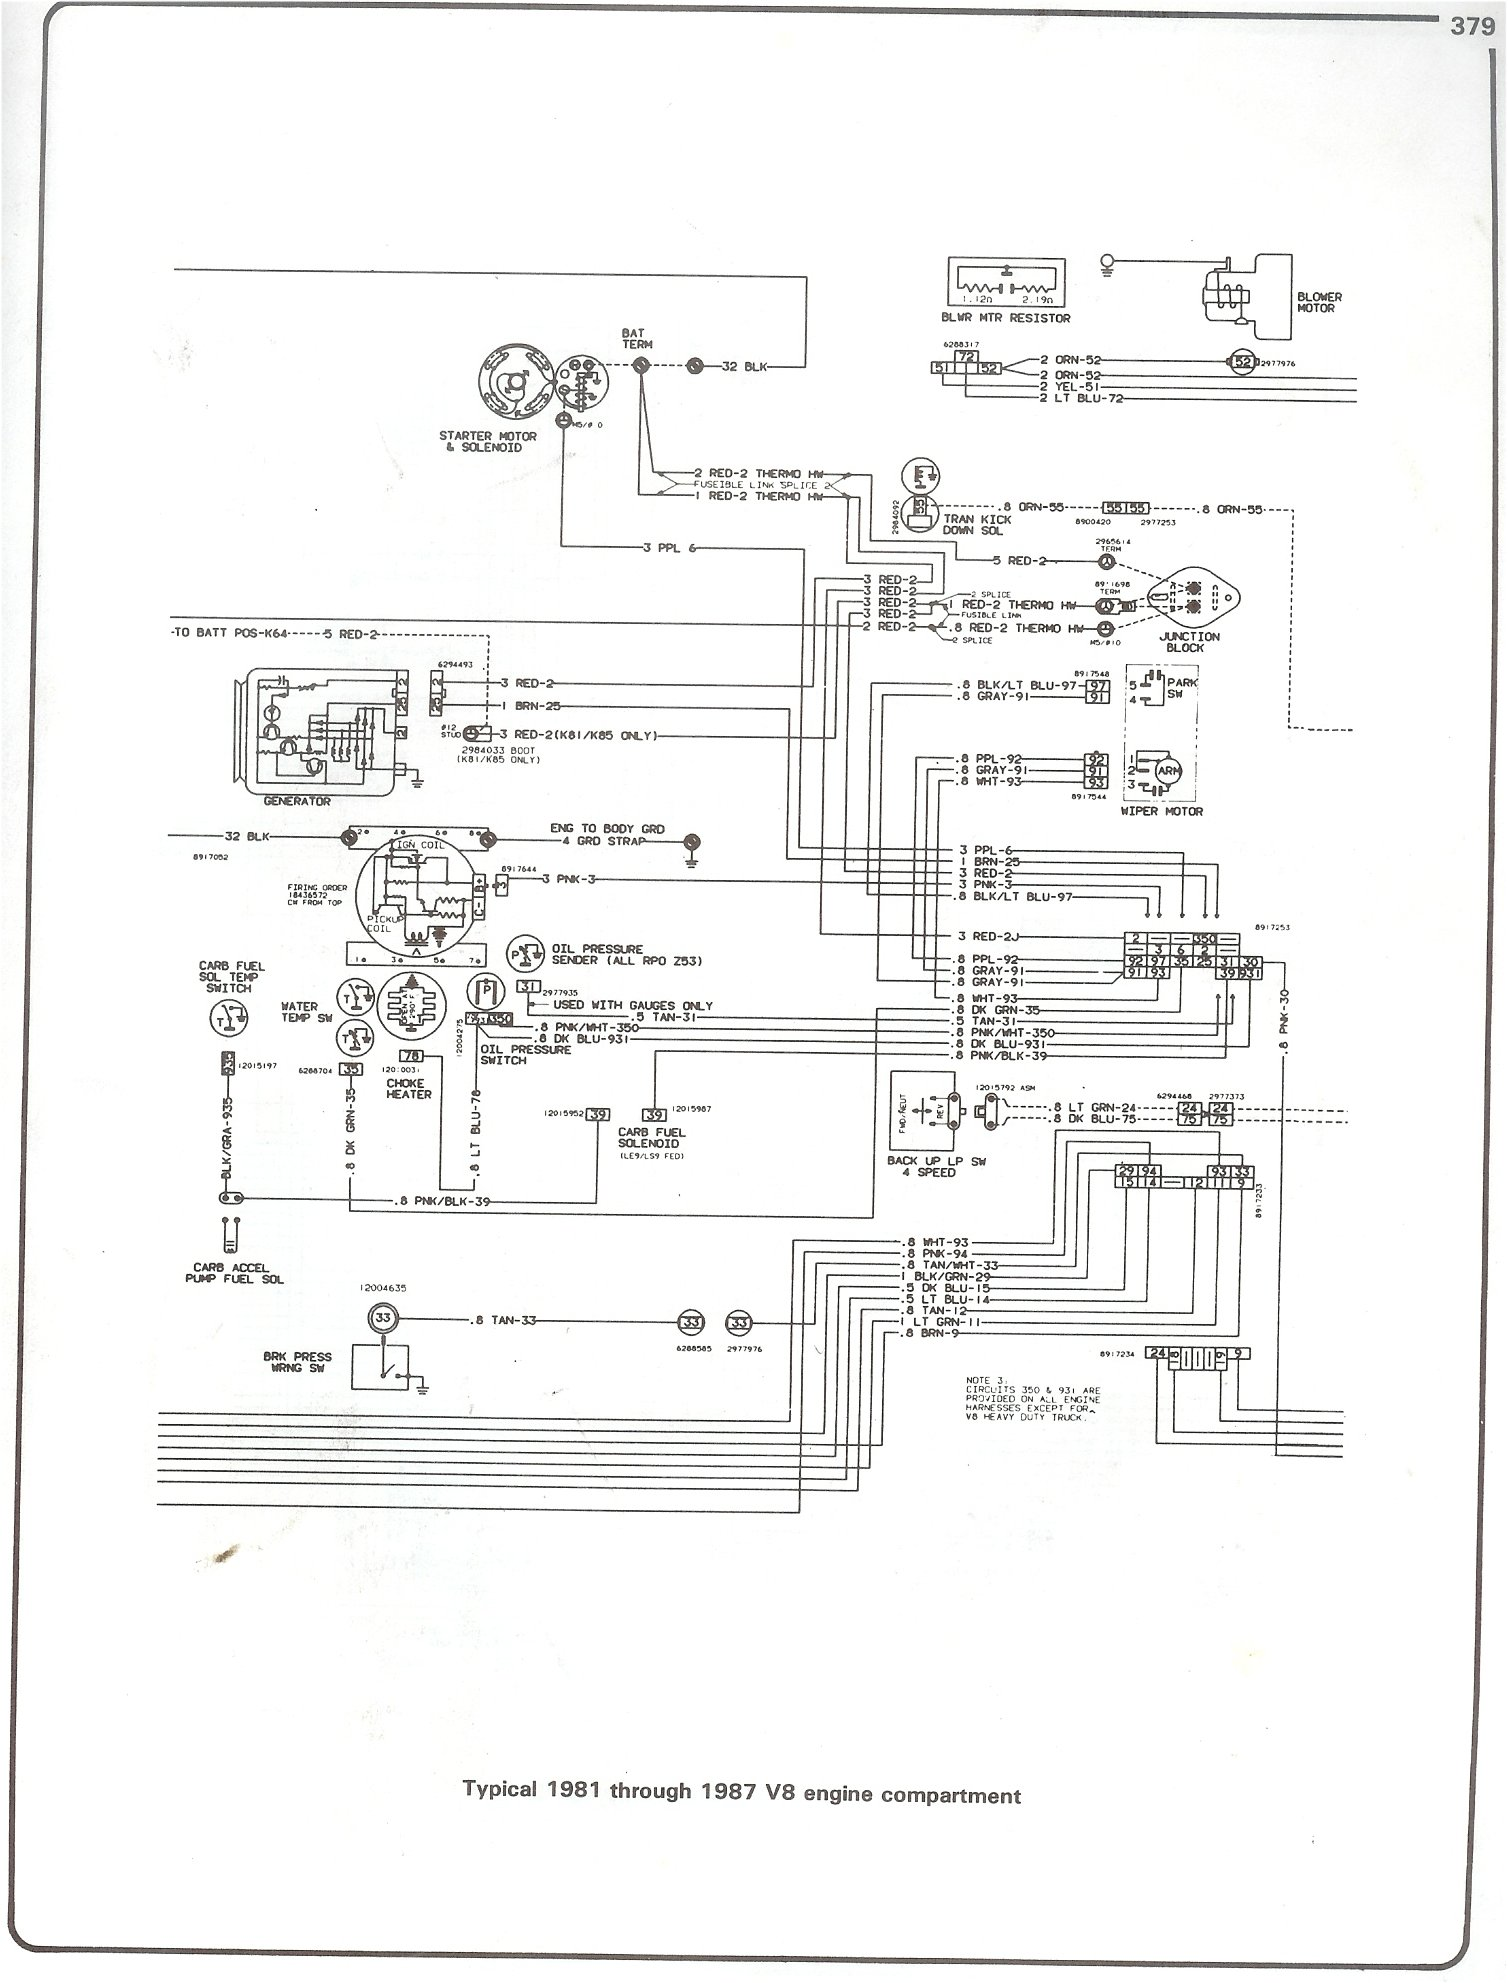 complete 73 87 wiring diagrams rh forum 73 87chevytrucks com chevrolet truck wiring diagrams 1968 chevrolet truck wiring diagram